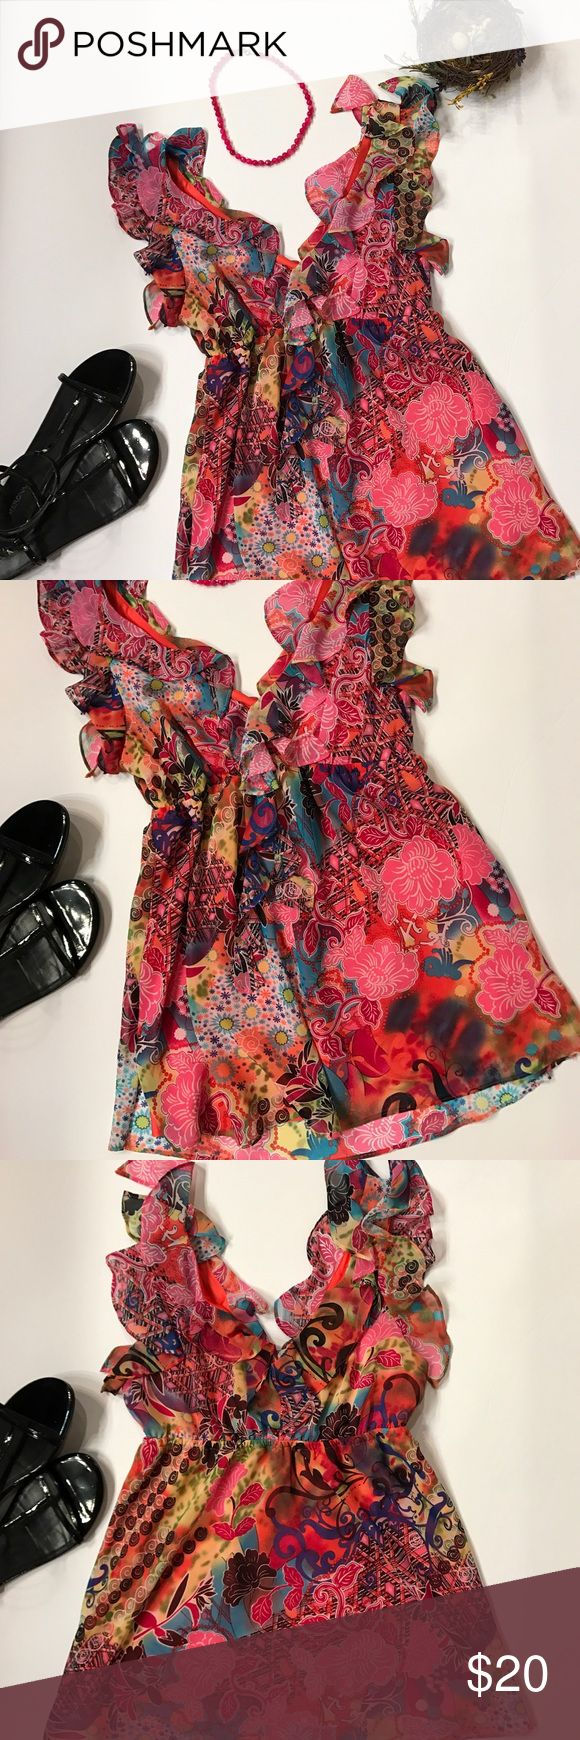 Bisou Bisou v-neck sleeveless print top Brighten up the room wearing this flirty v-neck top w/ ruffles from shoulders to underarms and along neckline in front and back. Pull over style w/elastic under bodice for flattering look. Shell & lining are 100% polyester Bisou Bisou Tops Blouses